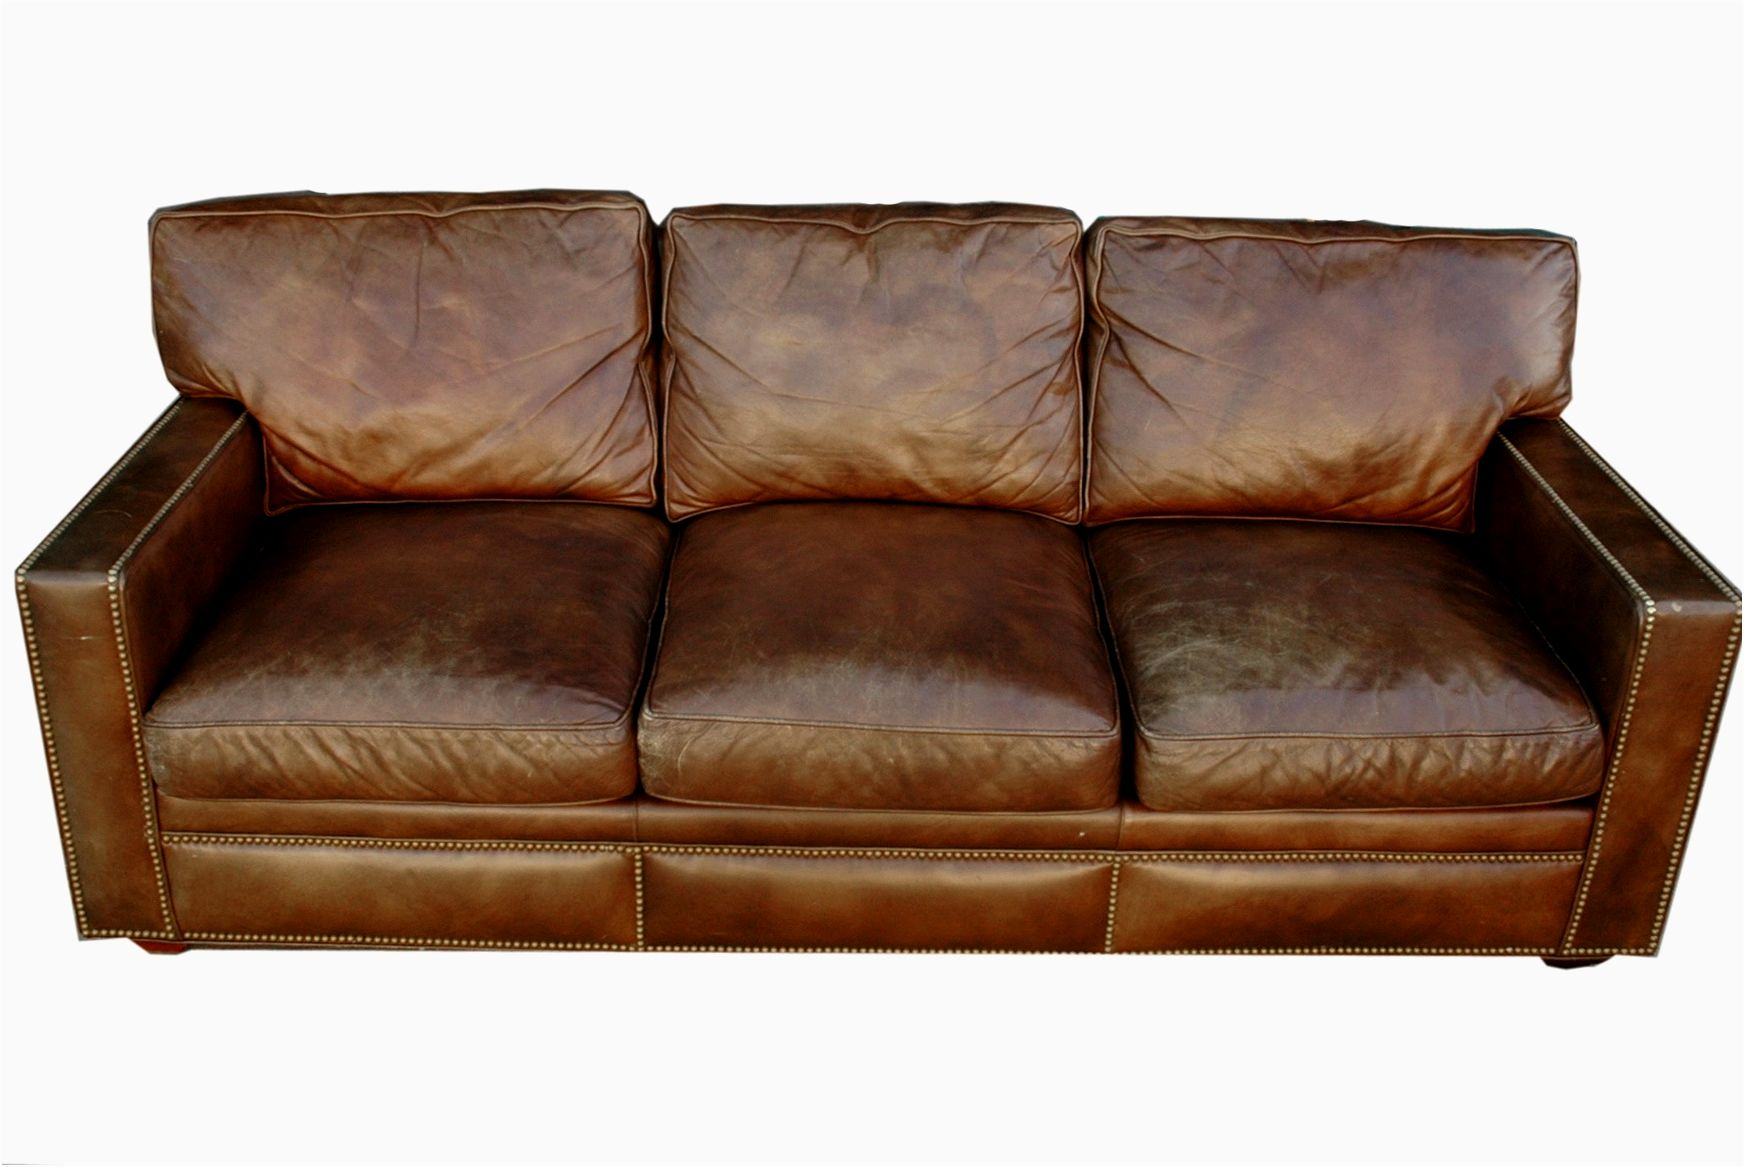 incredible distressed leather sofa design-Best Of Distressed Leather sofa Picture